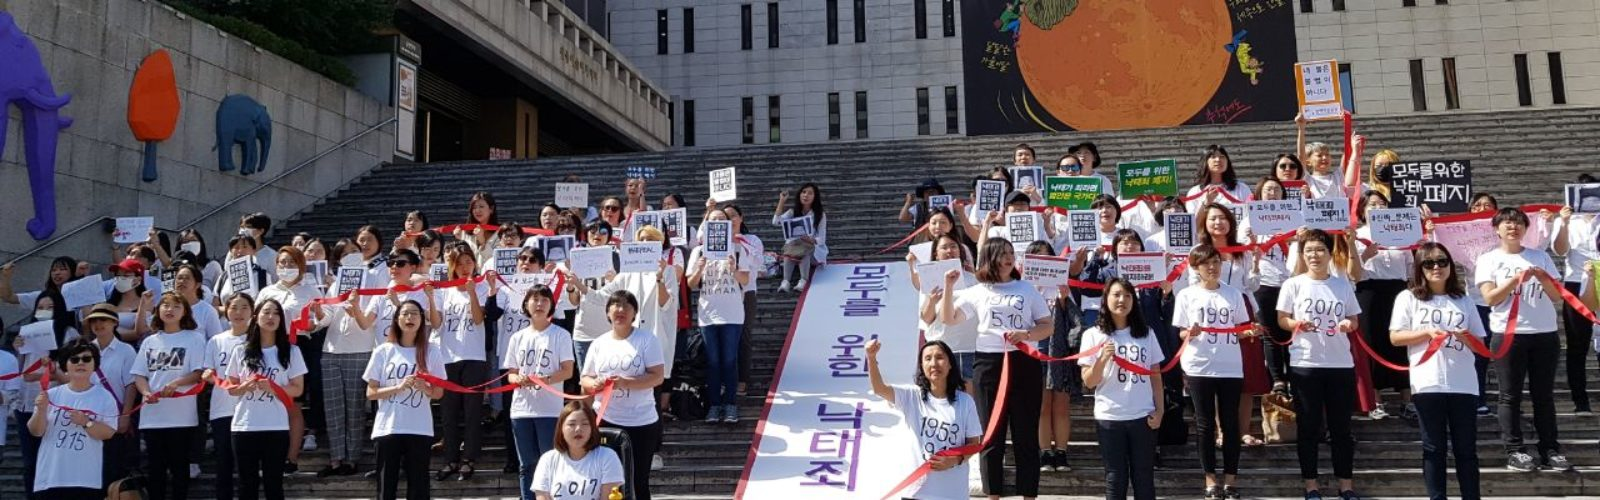 Challenging South Korea's Abortion Ban